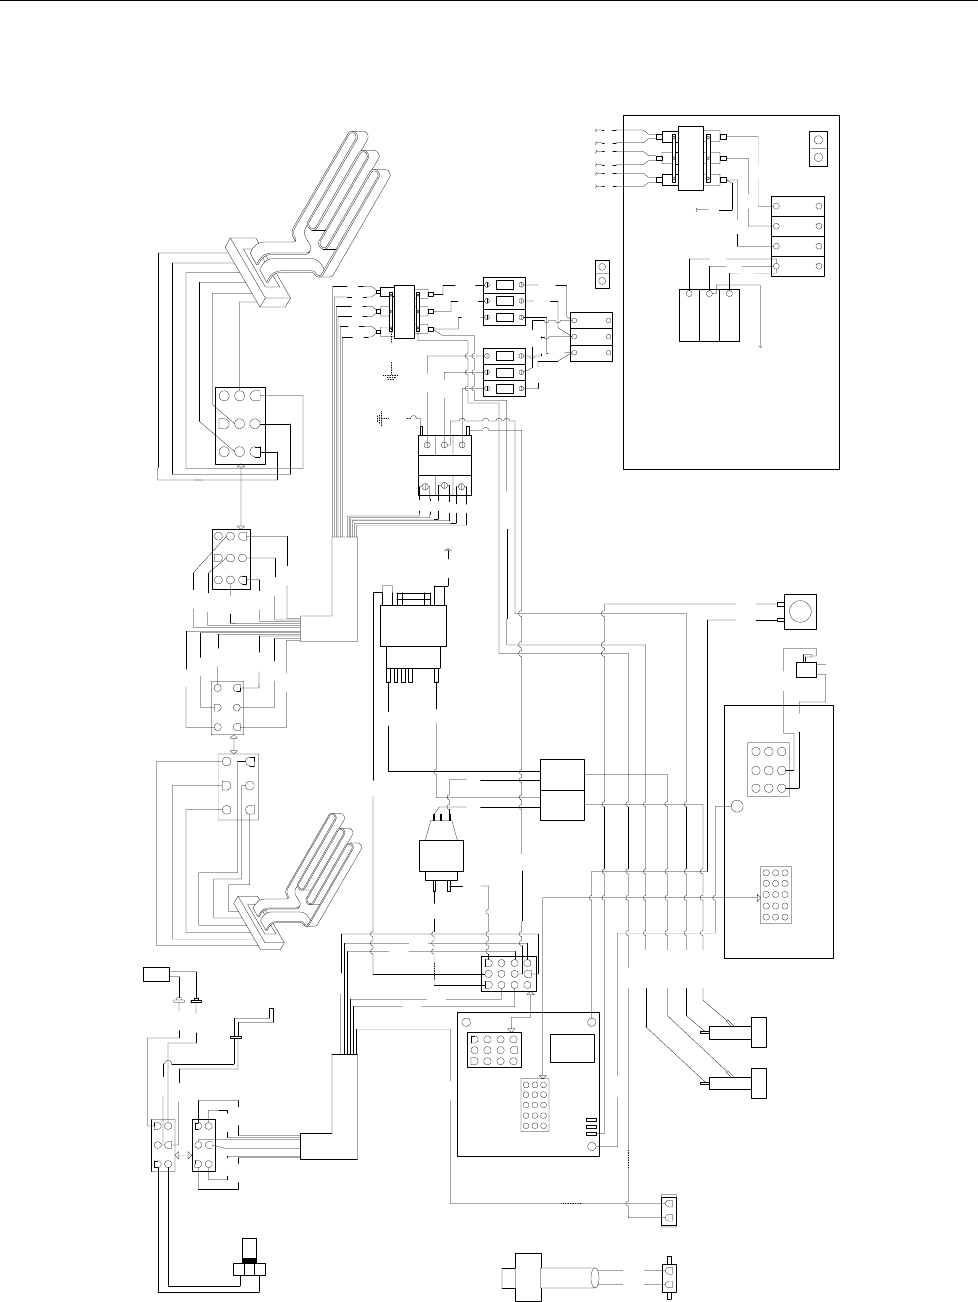 480v y diagram wiring diagram database 480V 3 Phase Wire Size frymaster ultimate electric series users manual 480v 3 phase motor wiring 480v y diagram